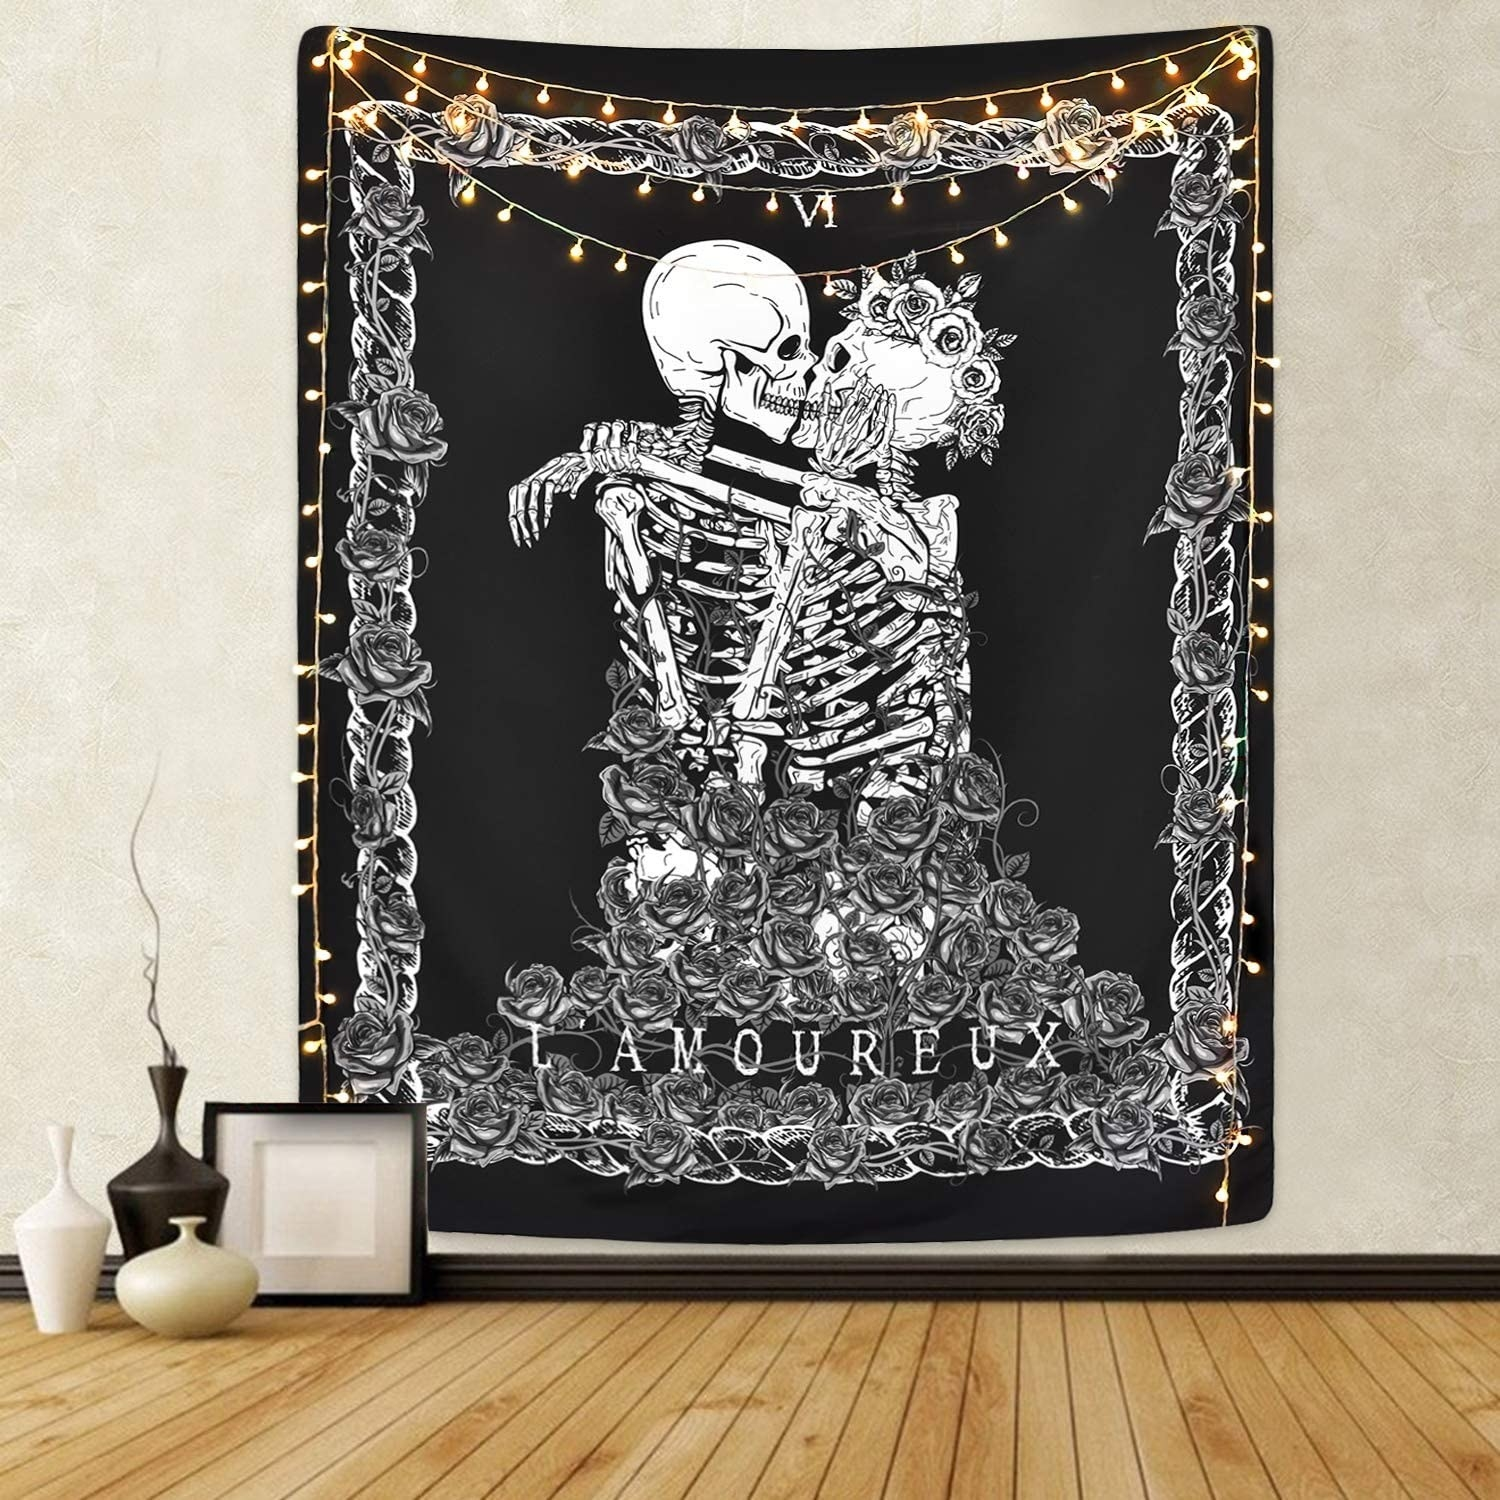 A tapestry of two skeletons embracing